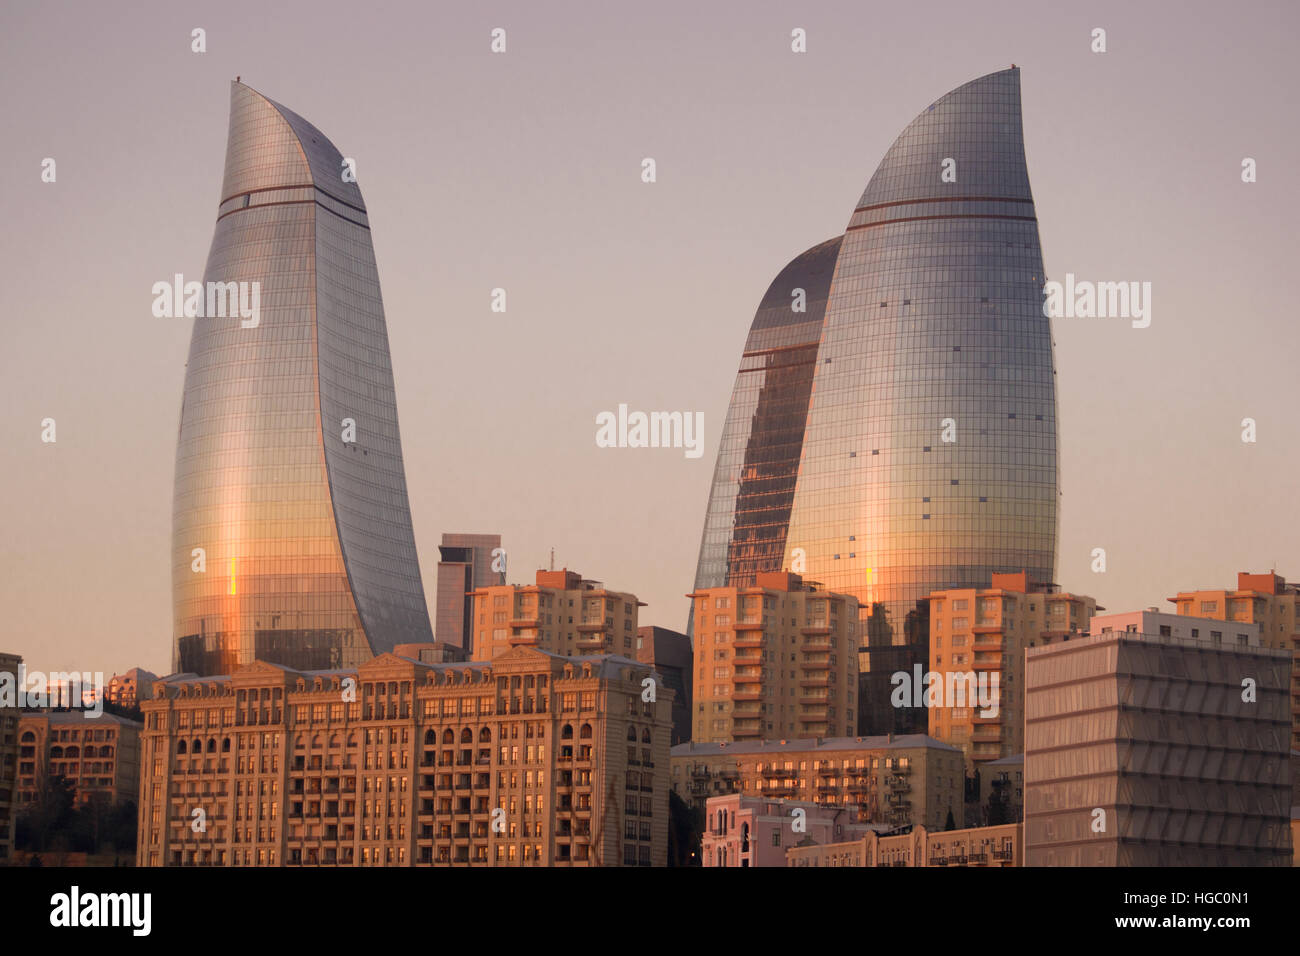 Flame Towers during sunrise of Baku. Flame Towers are new skyscrapers in Baku, Azerbaijan - Stock Image